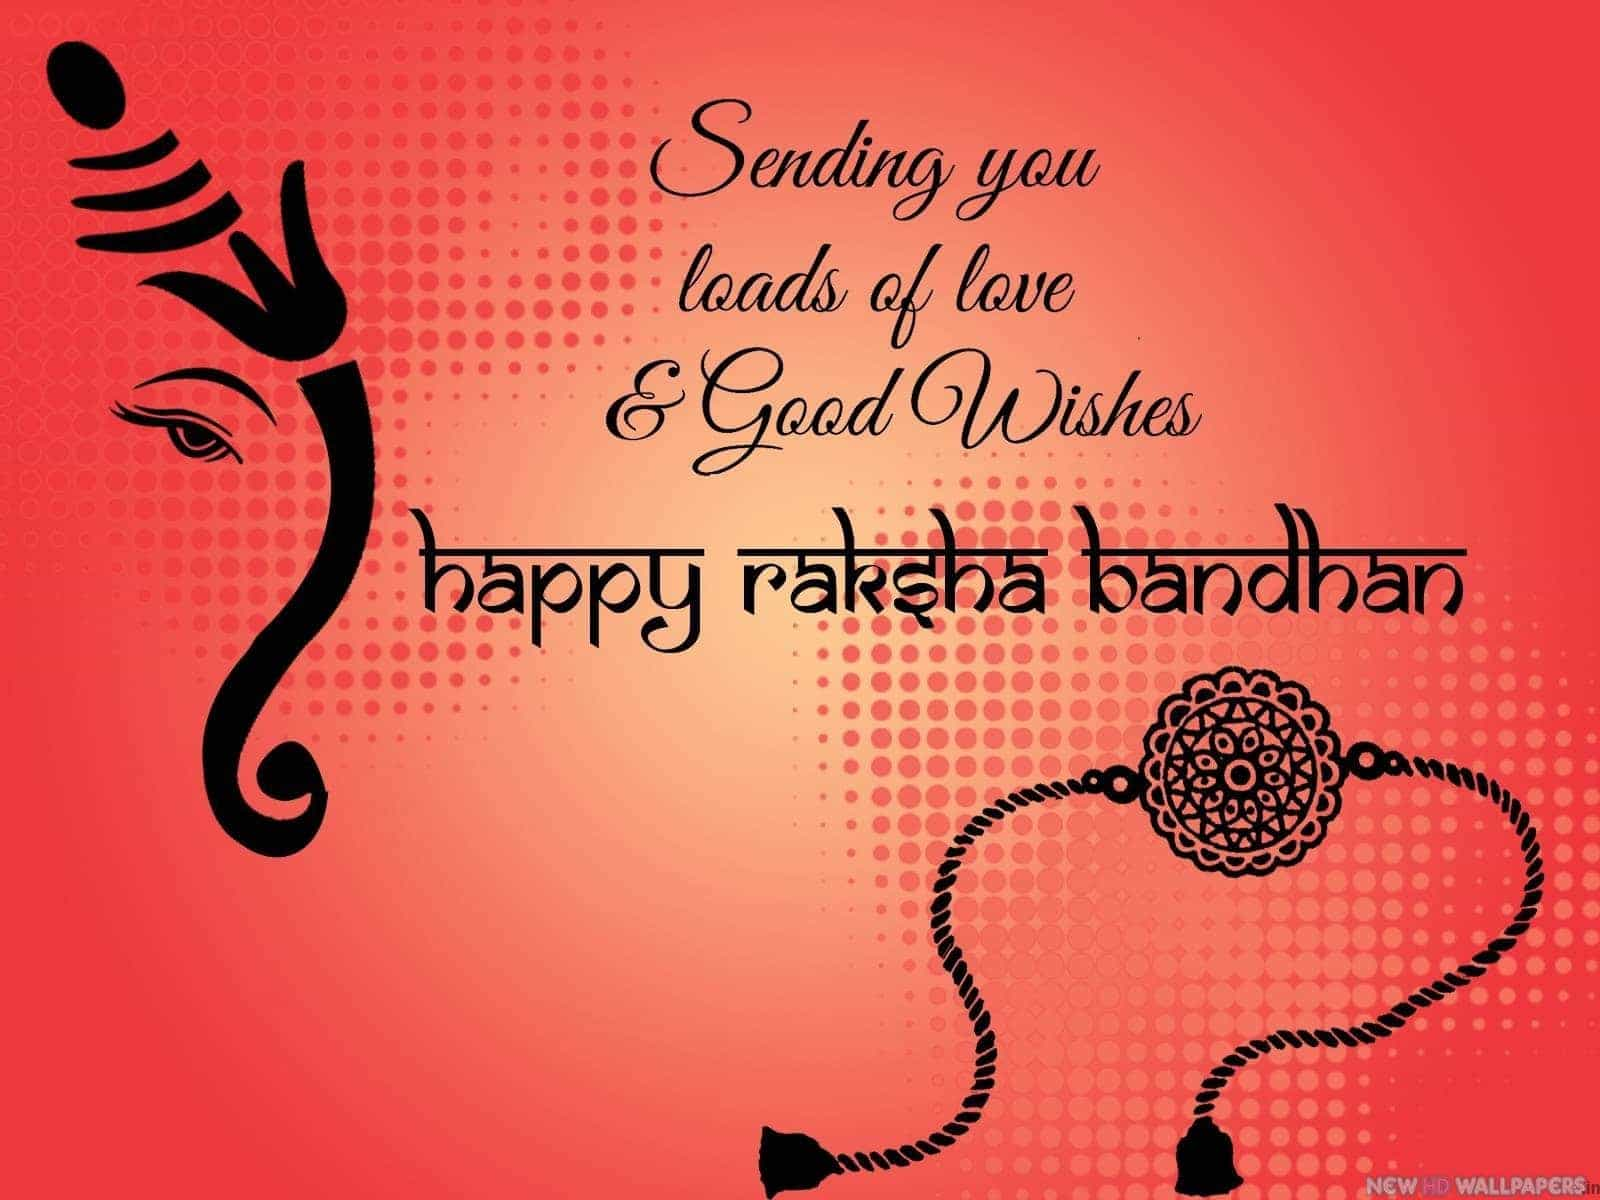 Sweet Wallpaper With Quotes Happy Raksha Bandhan Quotes 2017 Gujarati For Younger